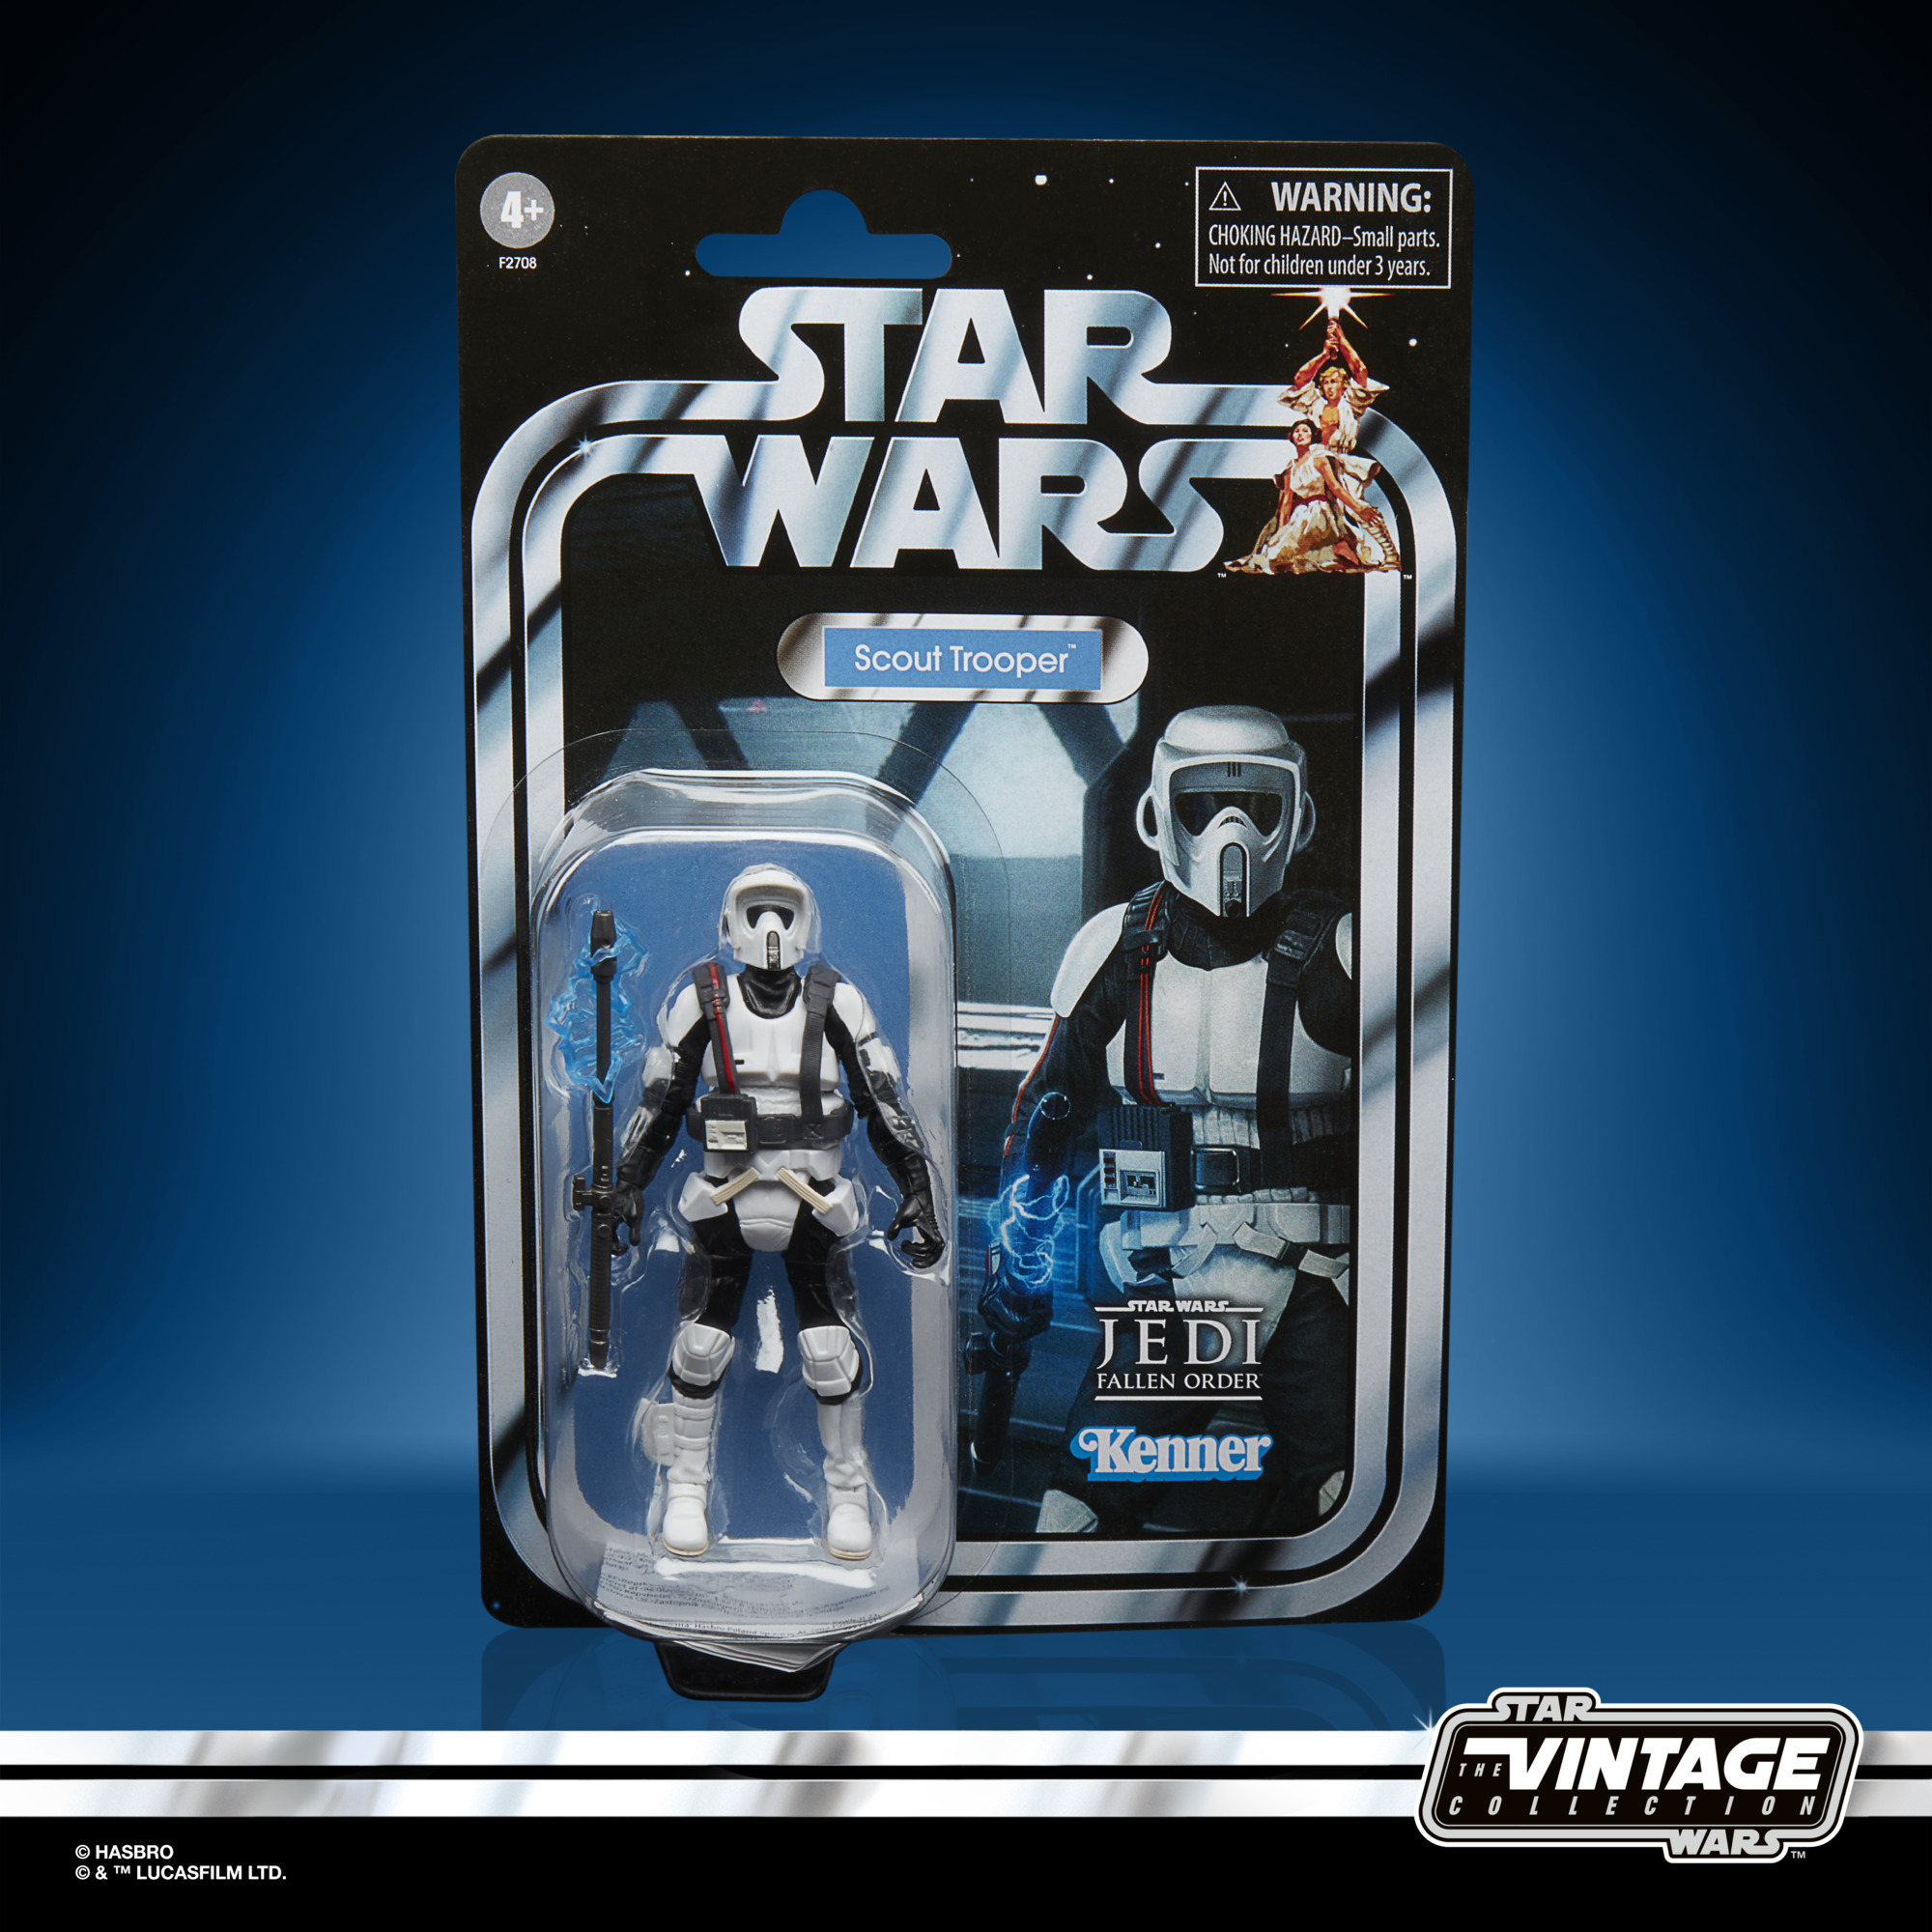 Star Wars The Vintage Collection Shock Scout Trooper Gaming Greats F2708 5010993866793